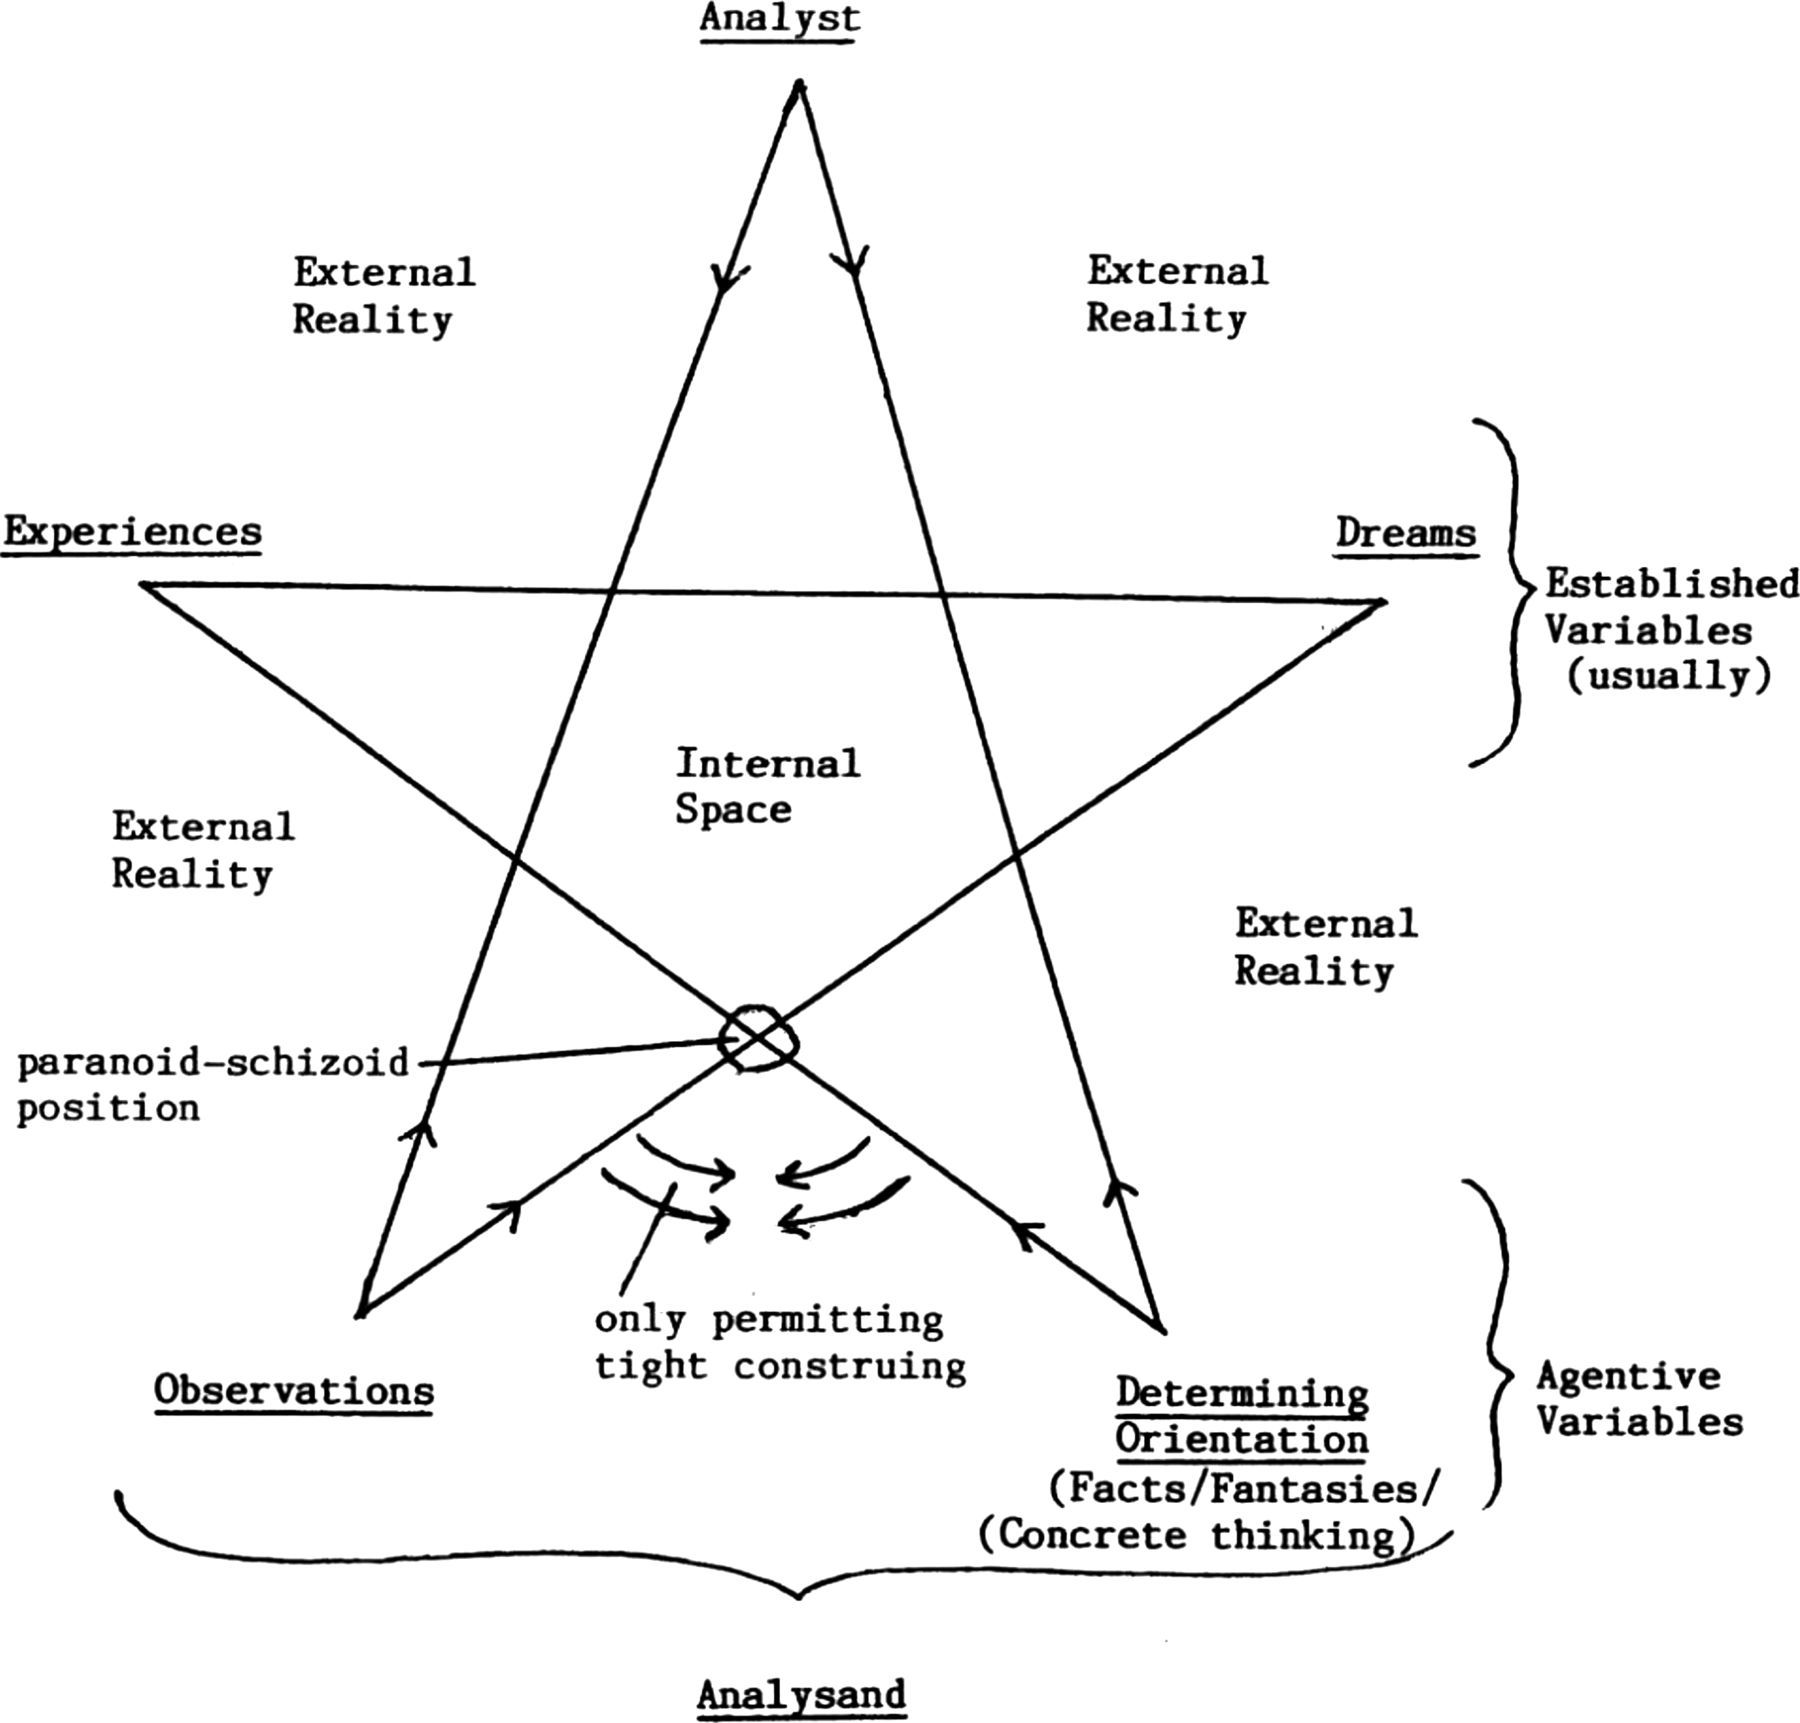 The Psychodynamic Pentapointed Cognitive Construct Theory